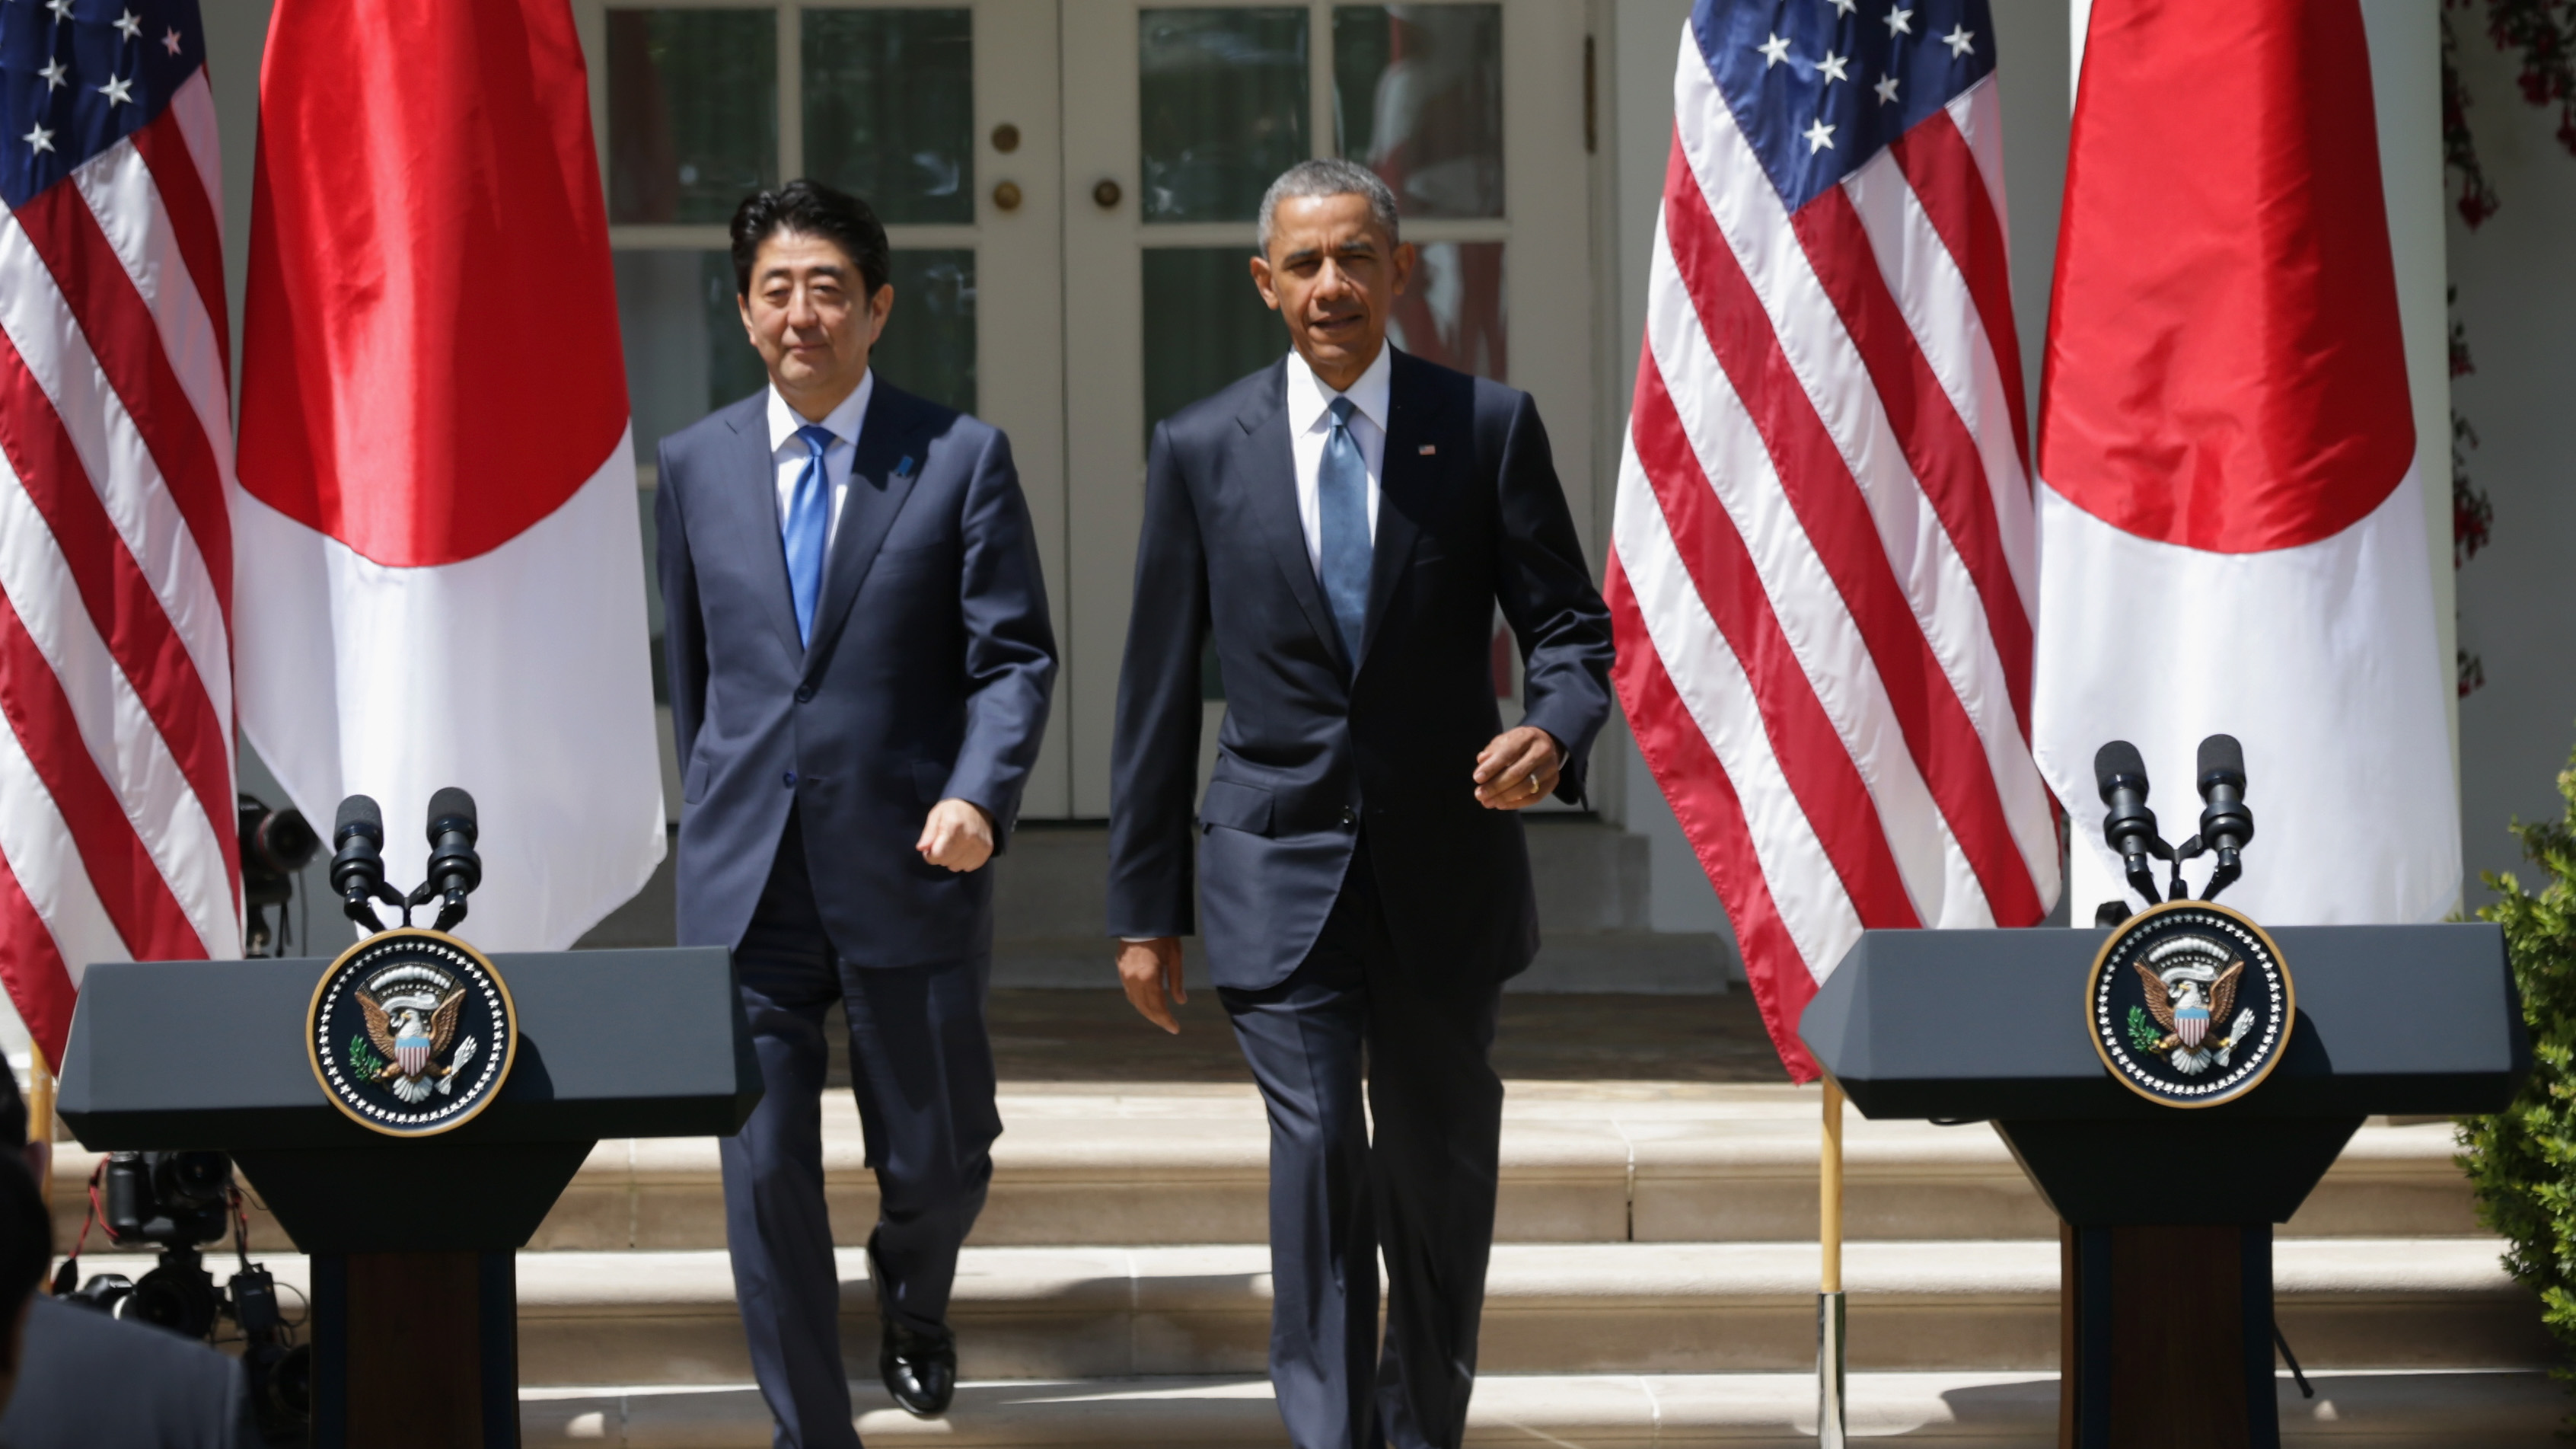 Obama Confident In Asia Trade Pact, But Track Record For Deals Is Spotty